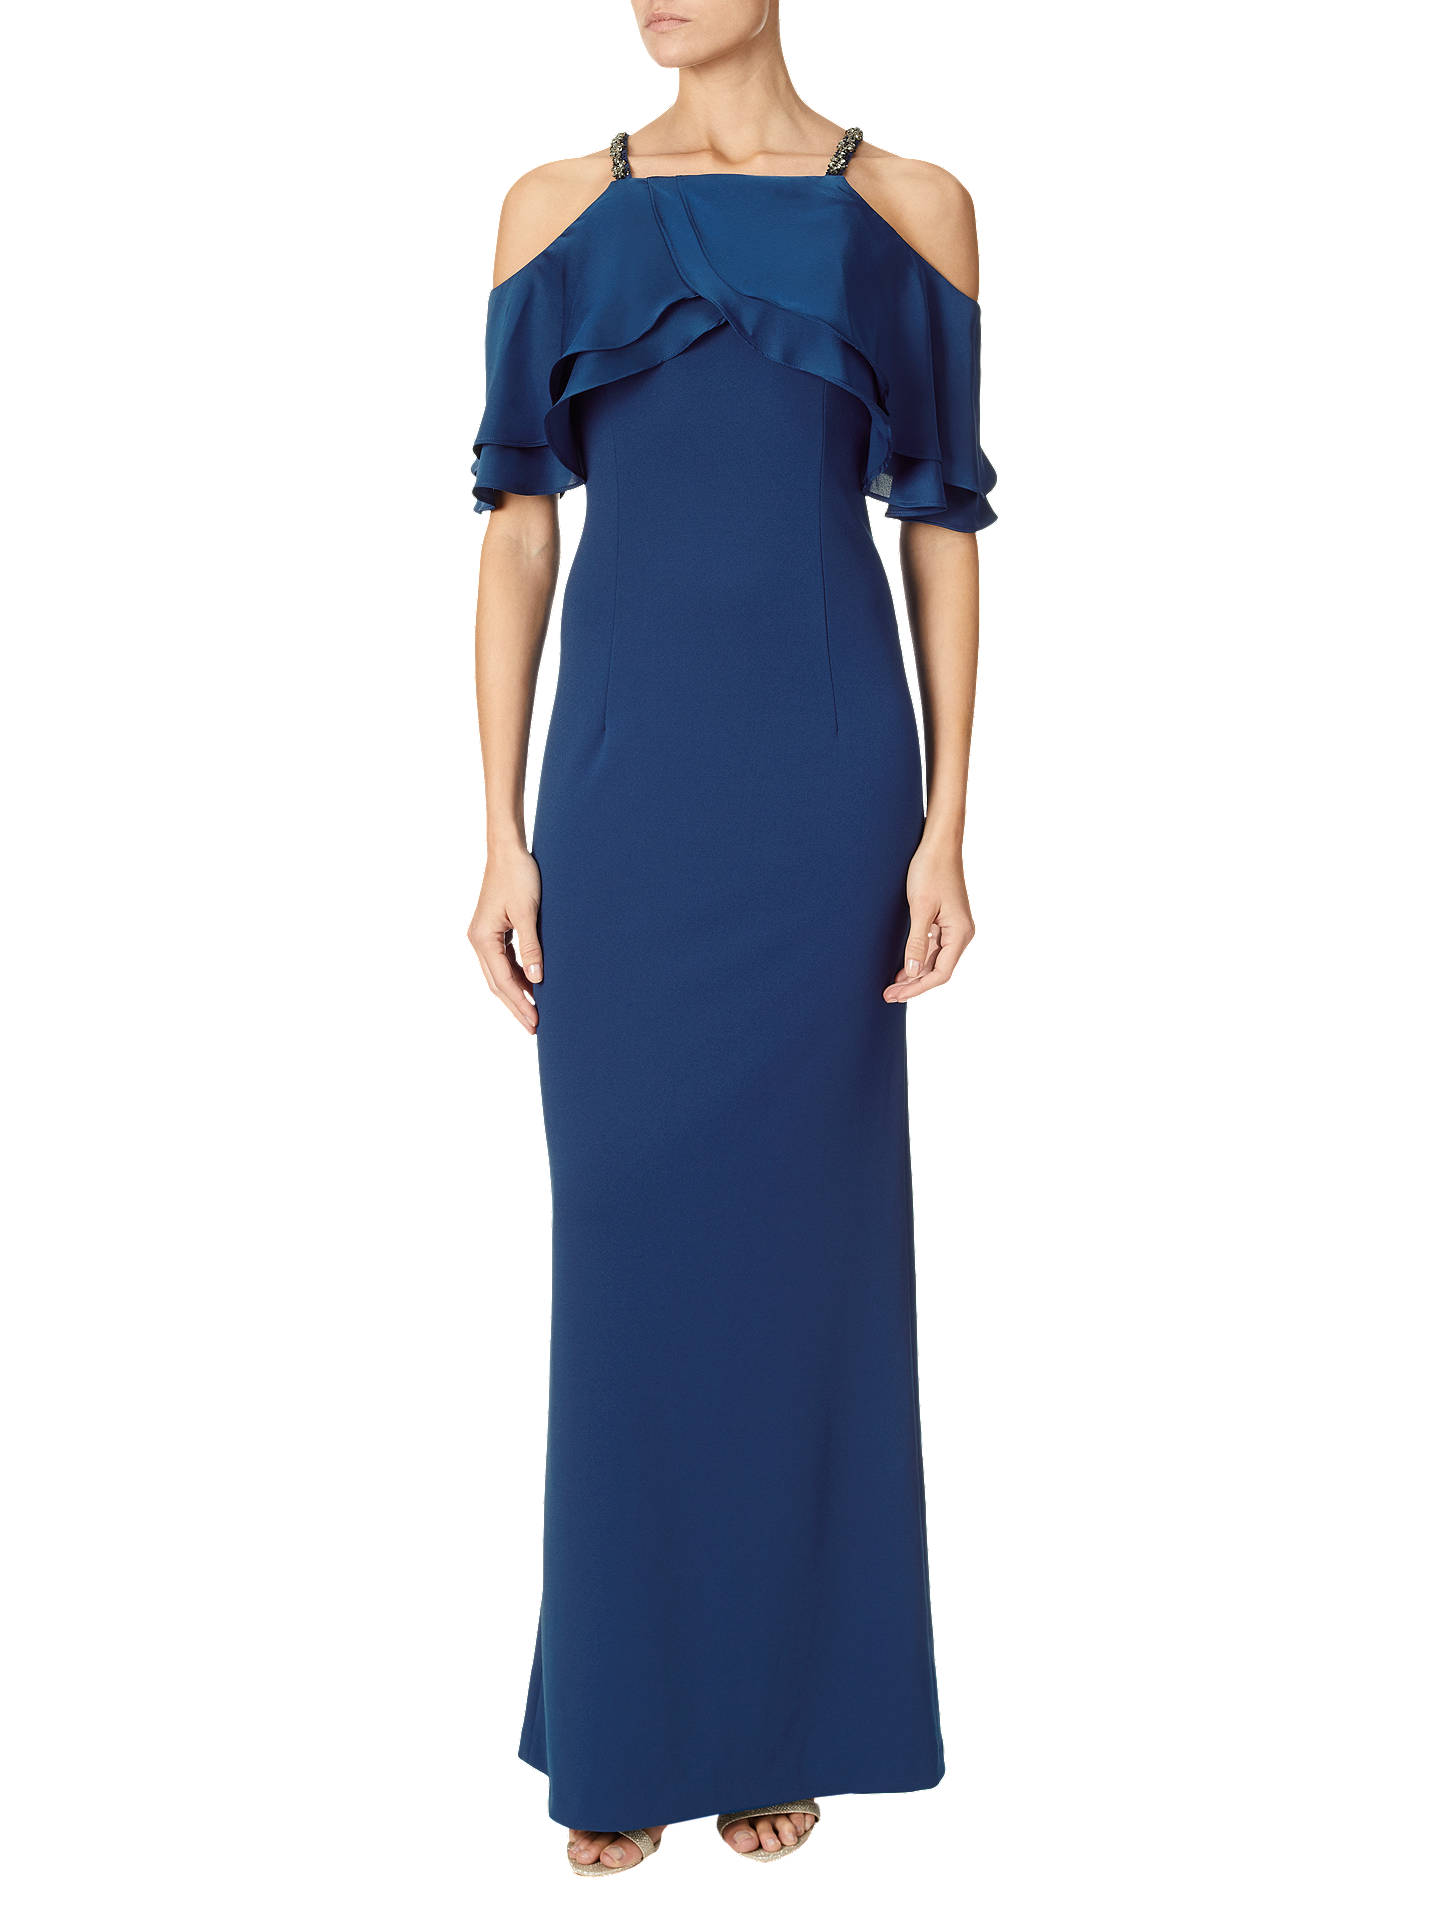 03b2b699 Adrianna Papell Cold Shoulder Popover Beaded Dress, Sapphire at John ...